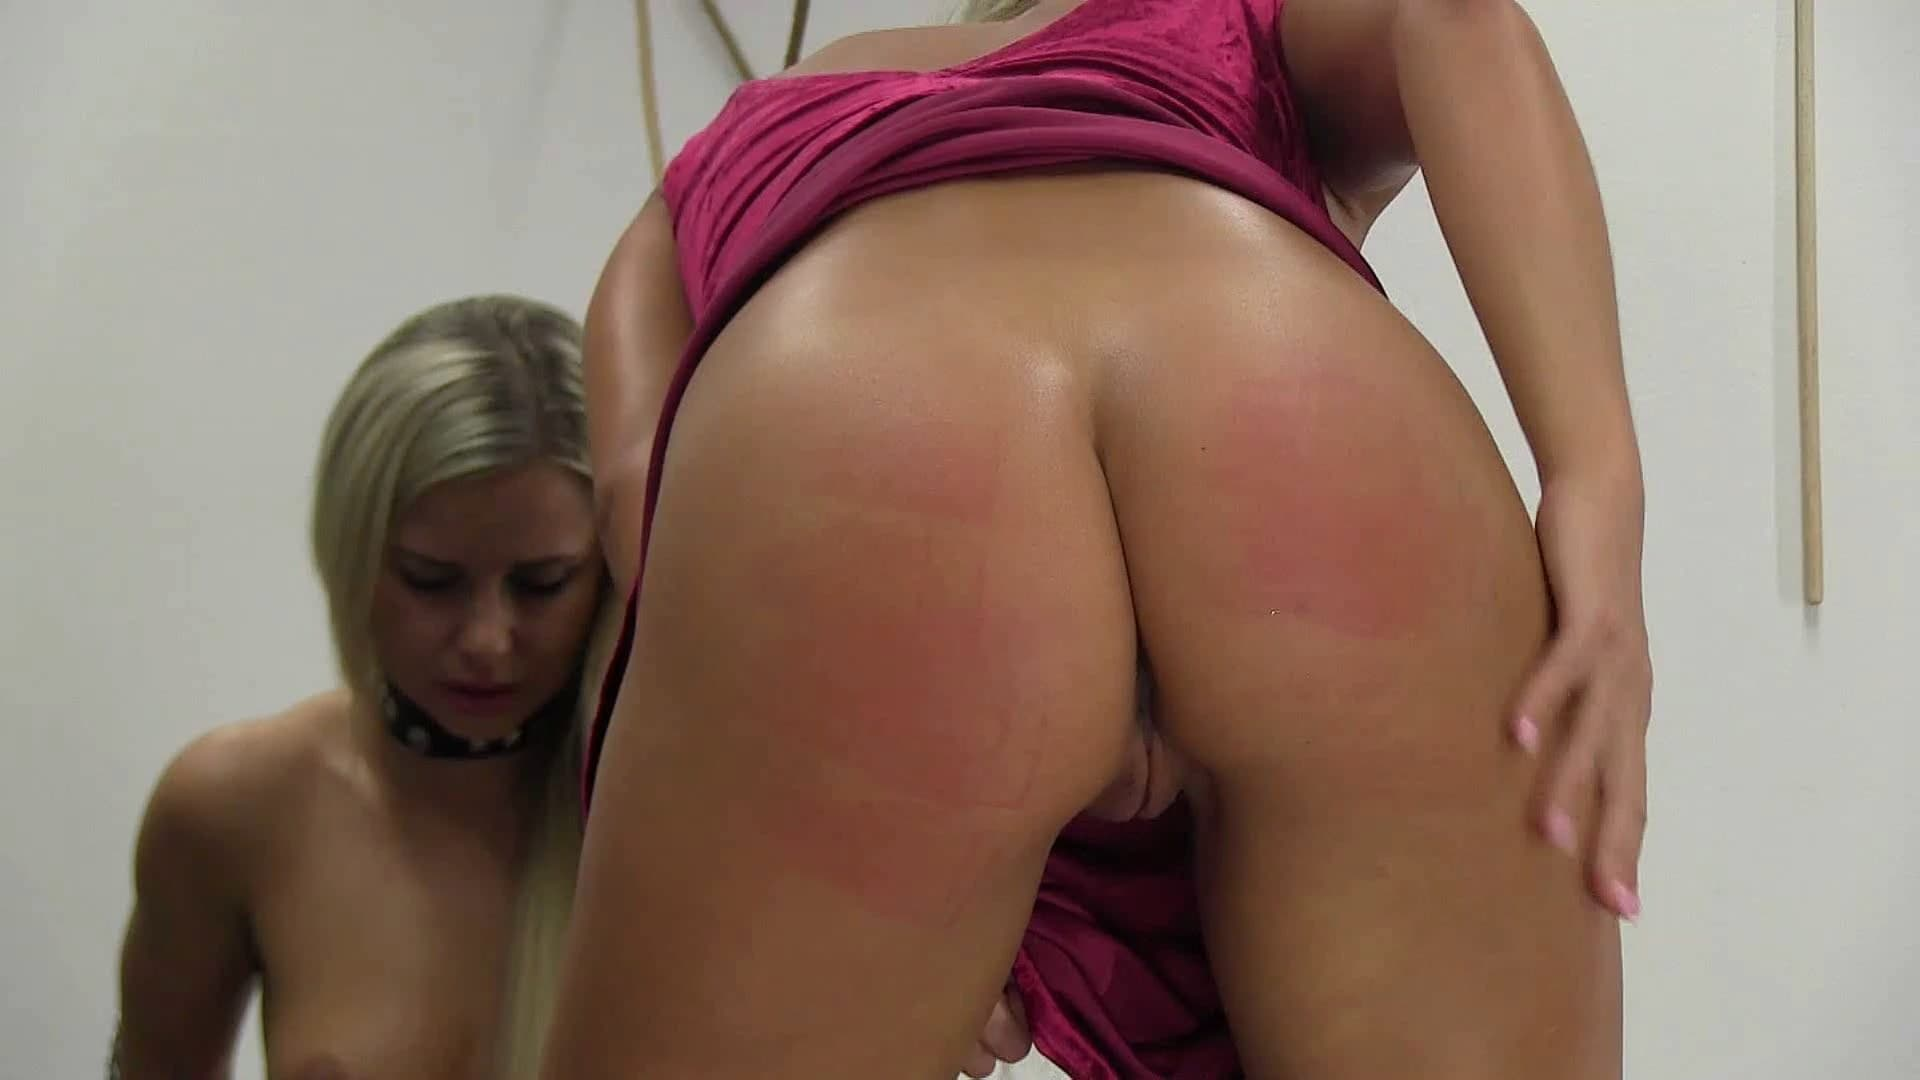 Spanking Server – MP4/Full HD – Victoria – 2021 – 09 Week